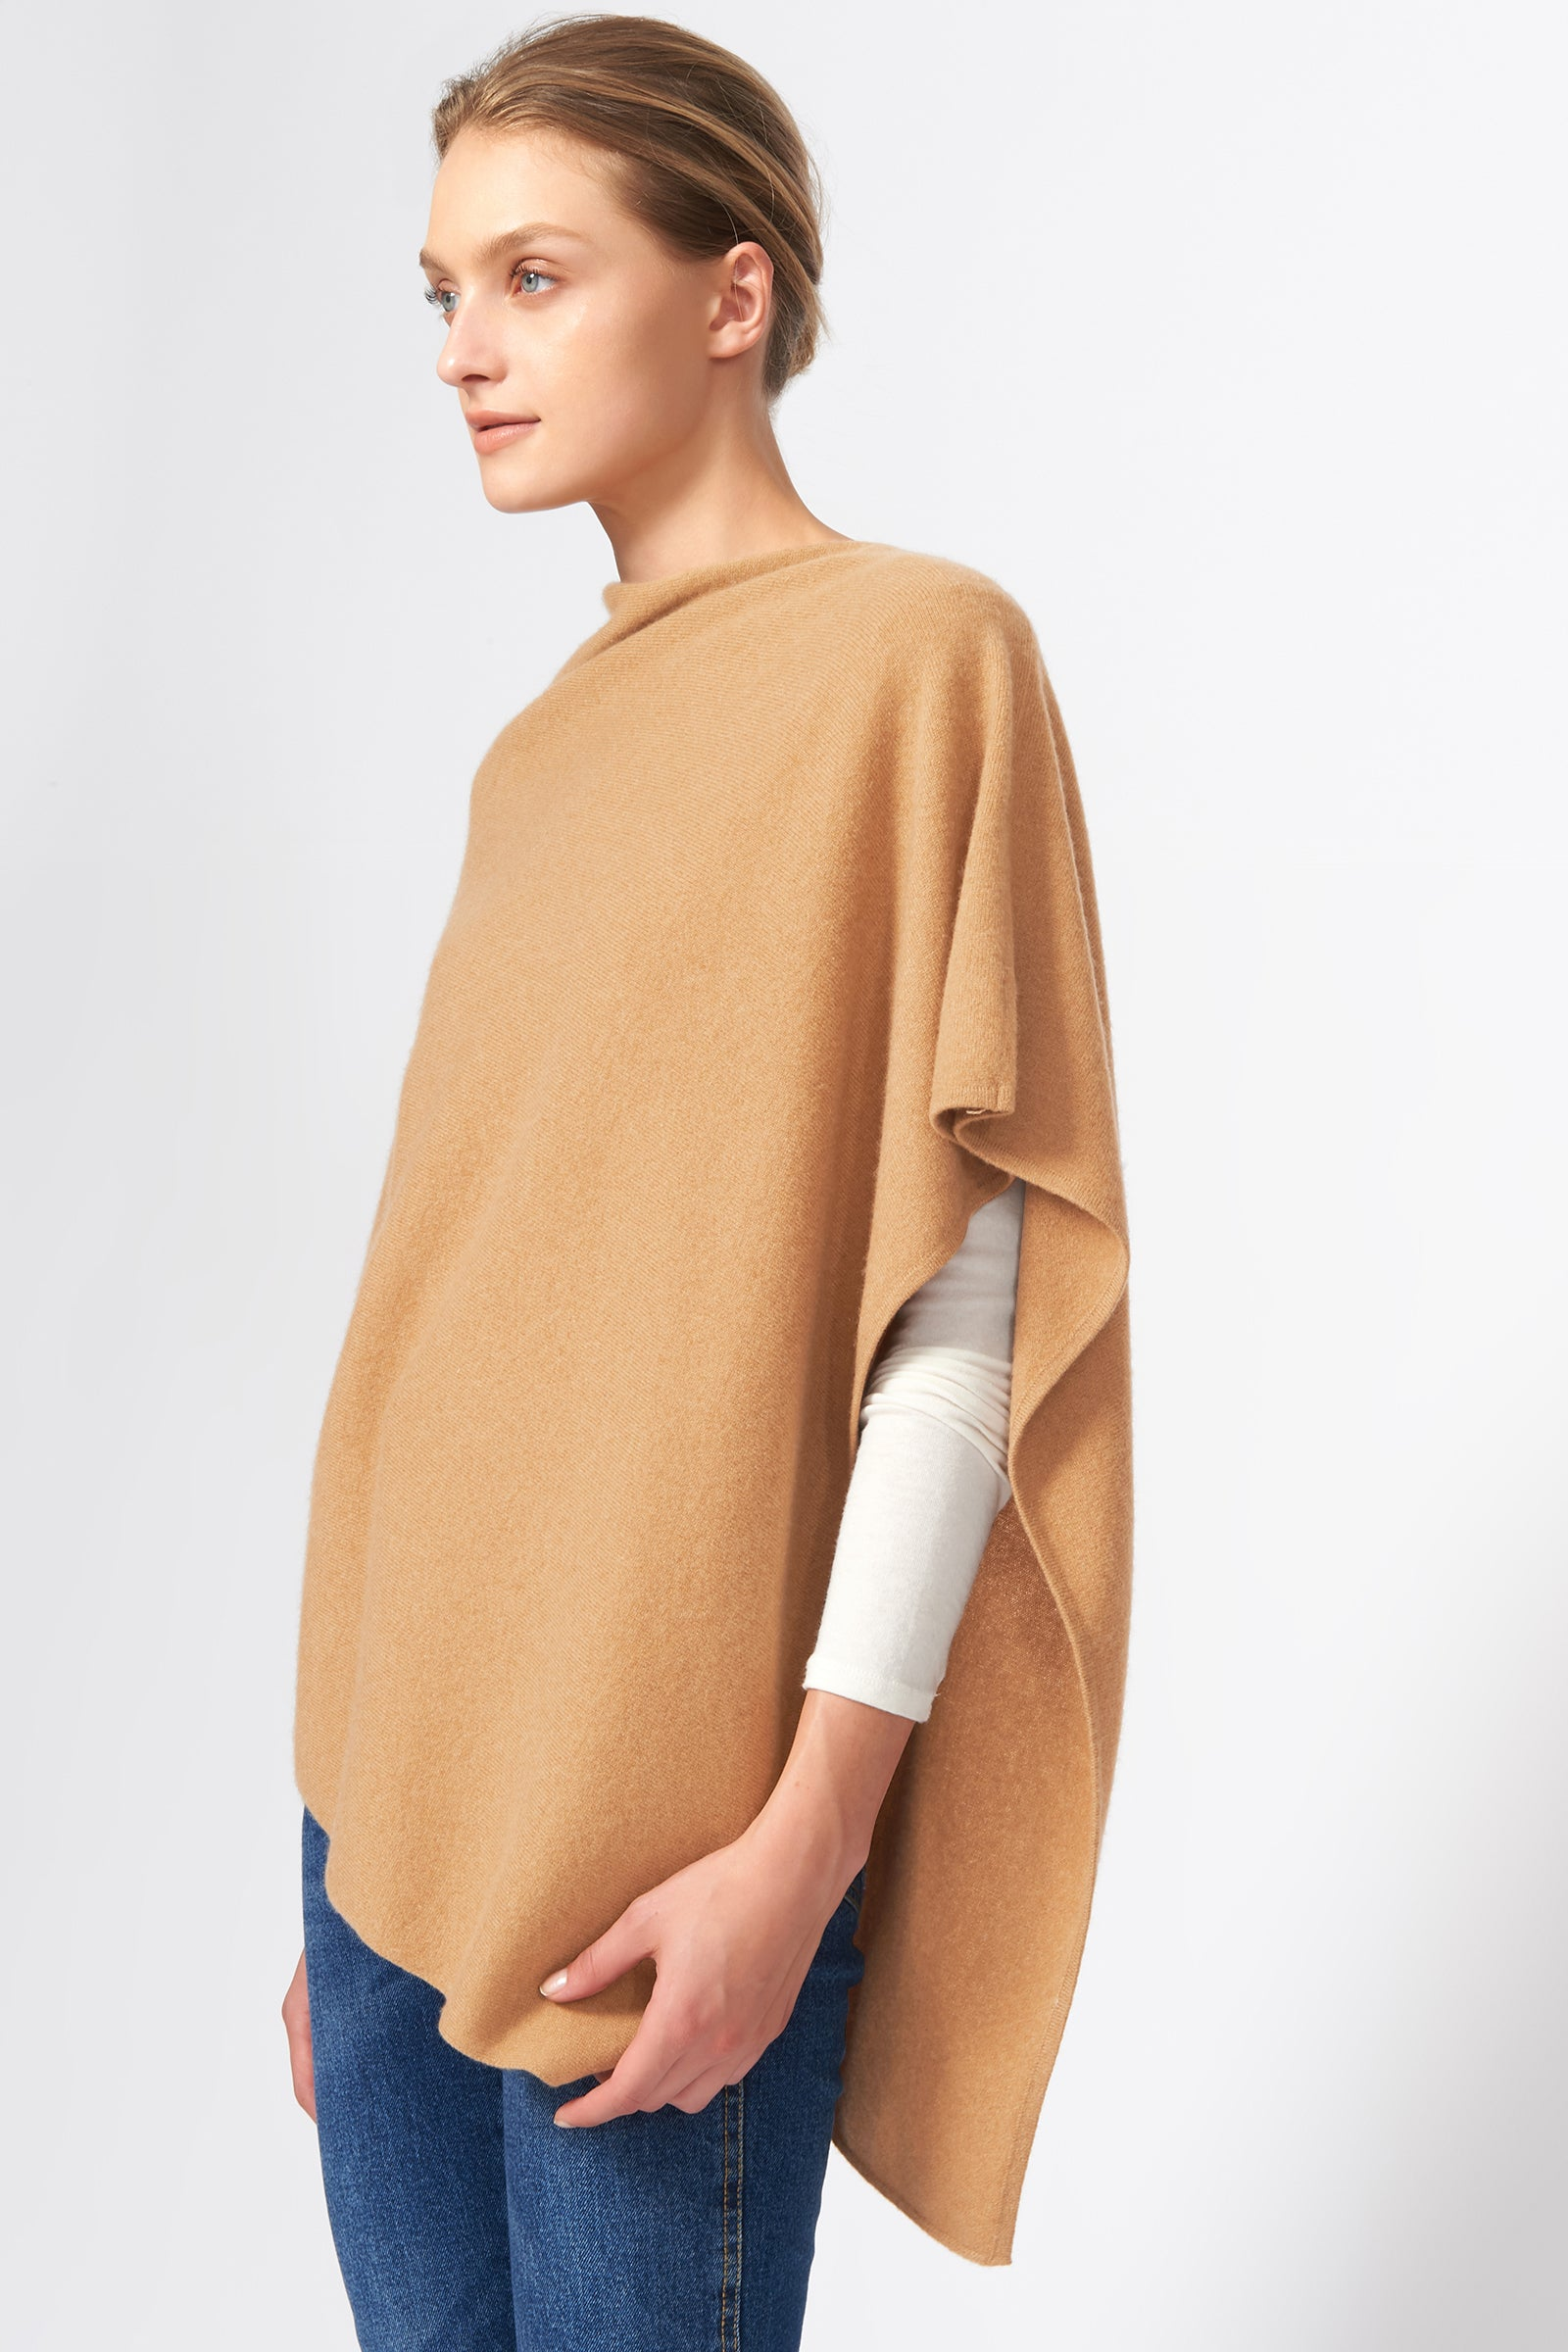 Kal Rieman Cashmere Poncho in Camel on Model Side View